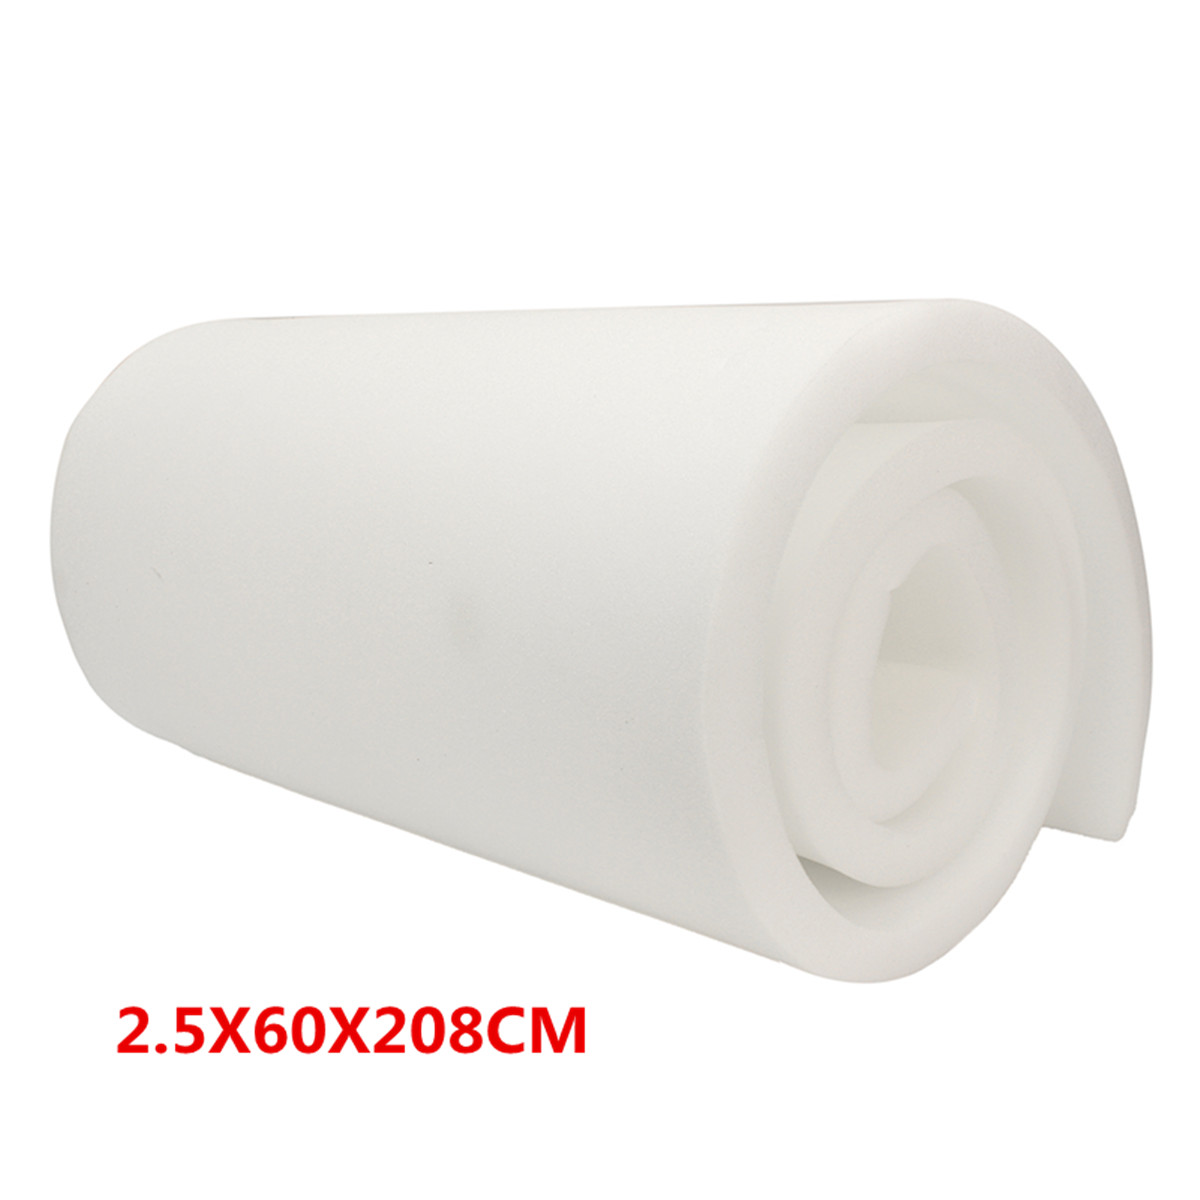 208X60X2.5cm High Density Seat Foam Rubber Replacement Upholstery Cushion Pad 1X24X82208X60X2.5cm High Density Seat Foam Rubber Replacement Upholstery Cushion Pad 1X24X82